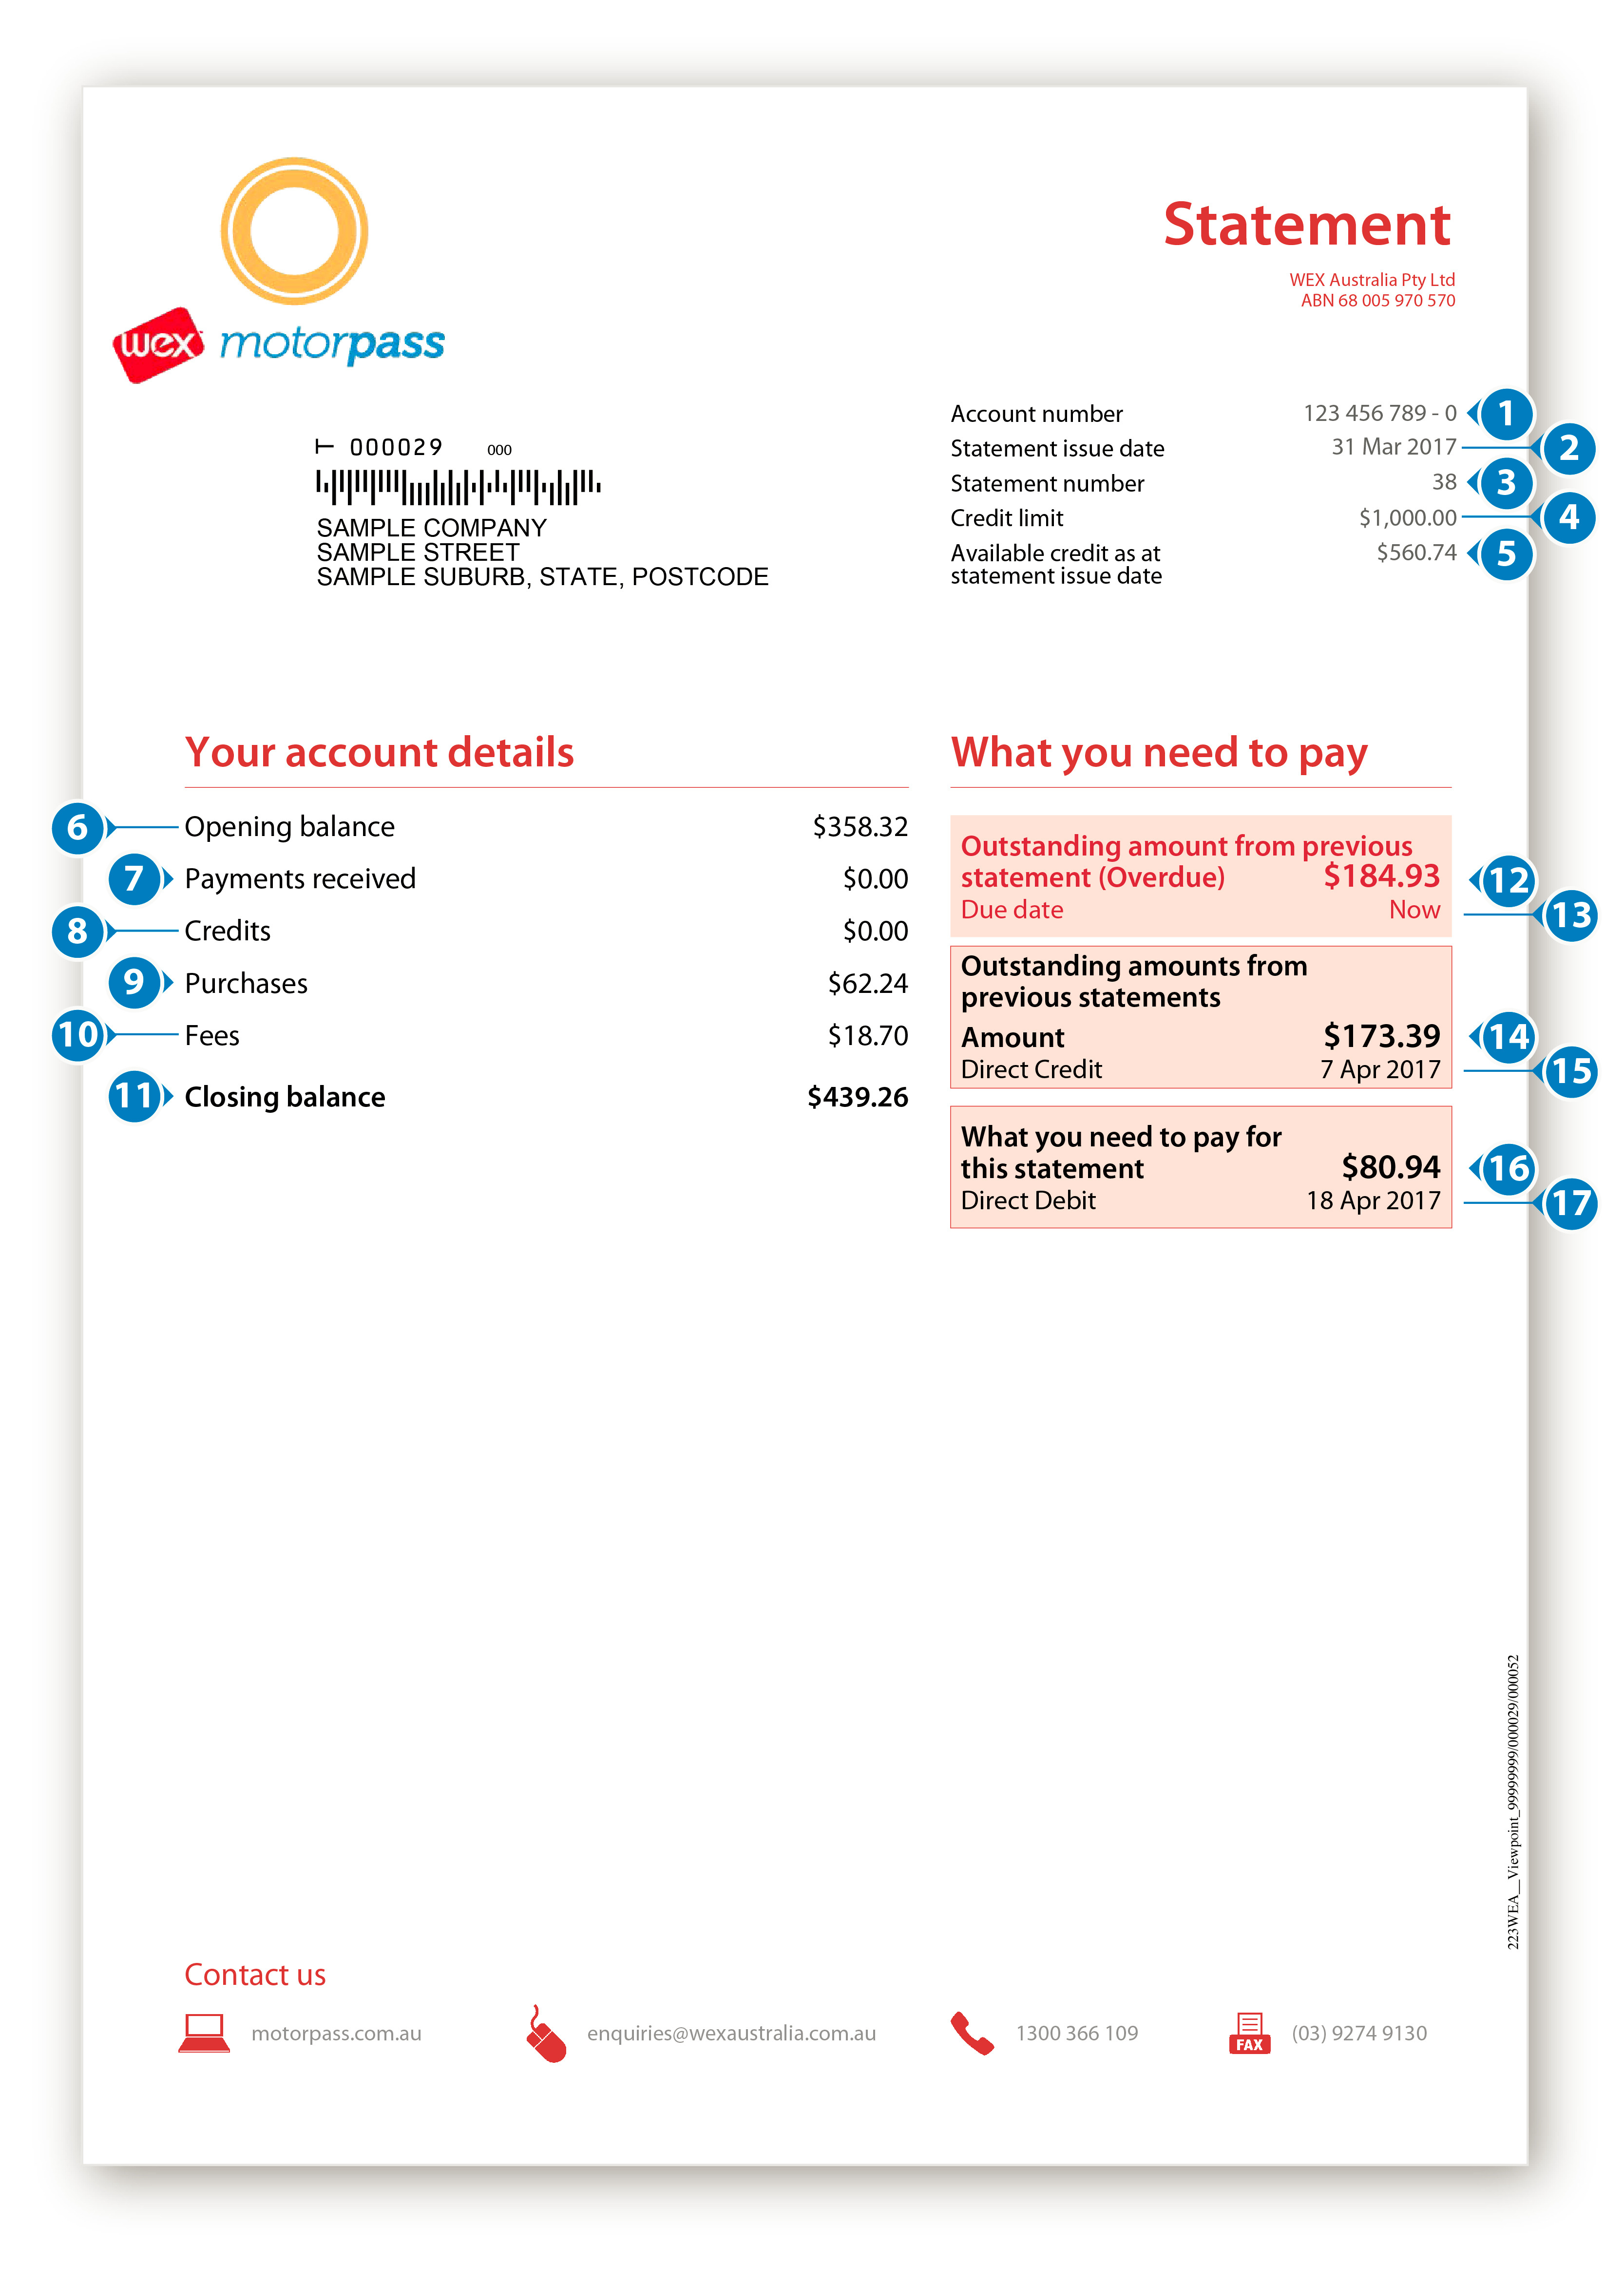 WEX Motorpass Paper Statement Example - Account Details and What You Need to Pay